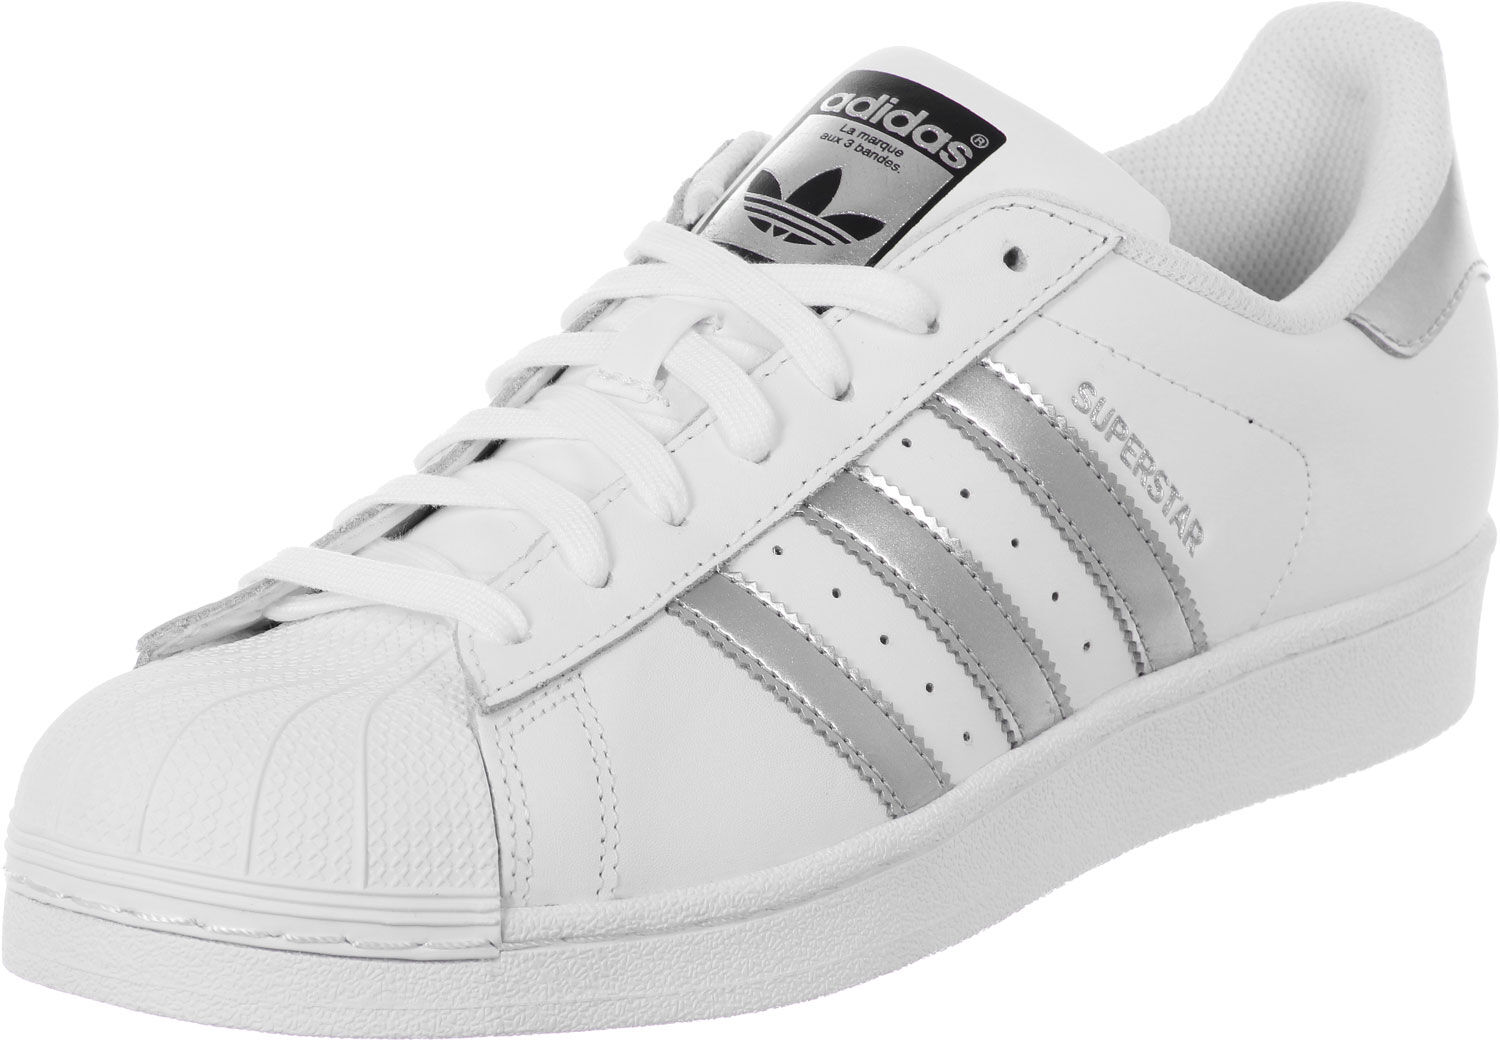 adidas Superstar W - Sneakers Low bij Stylefile